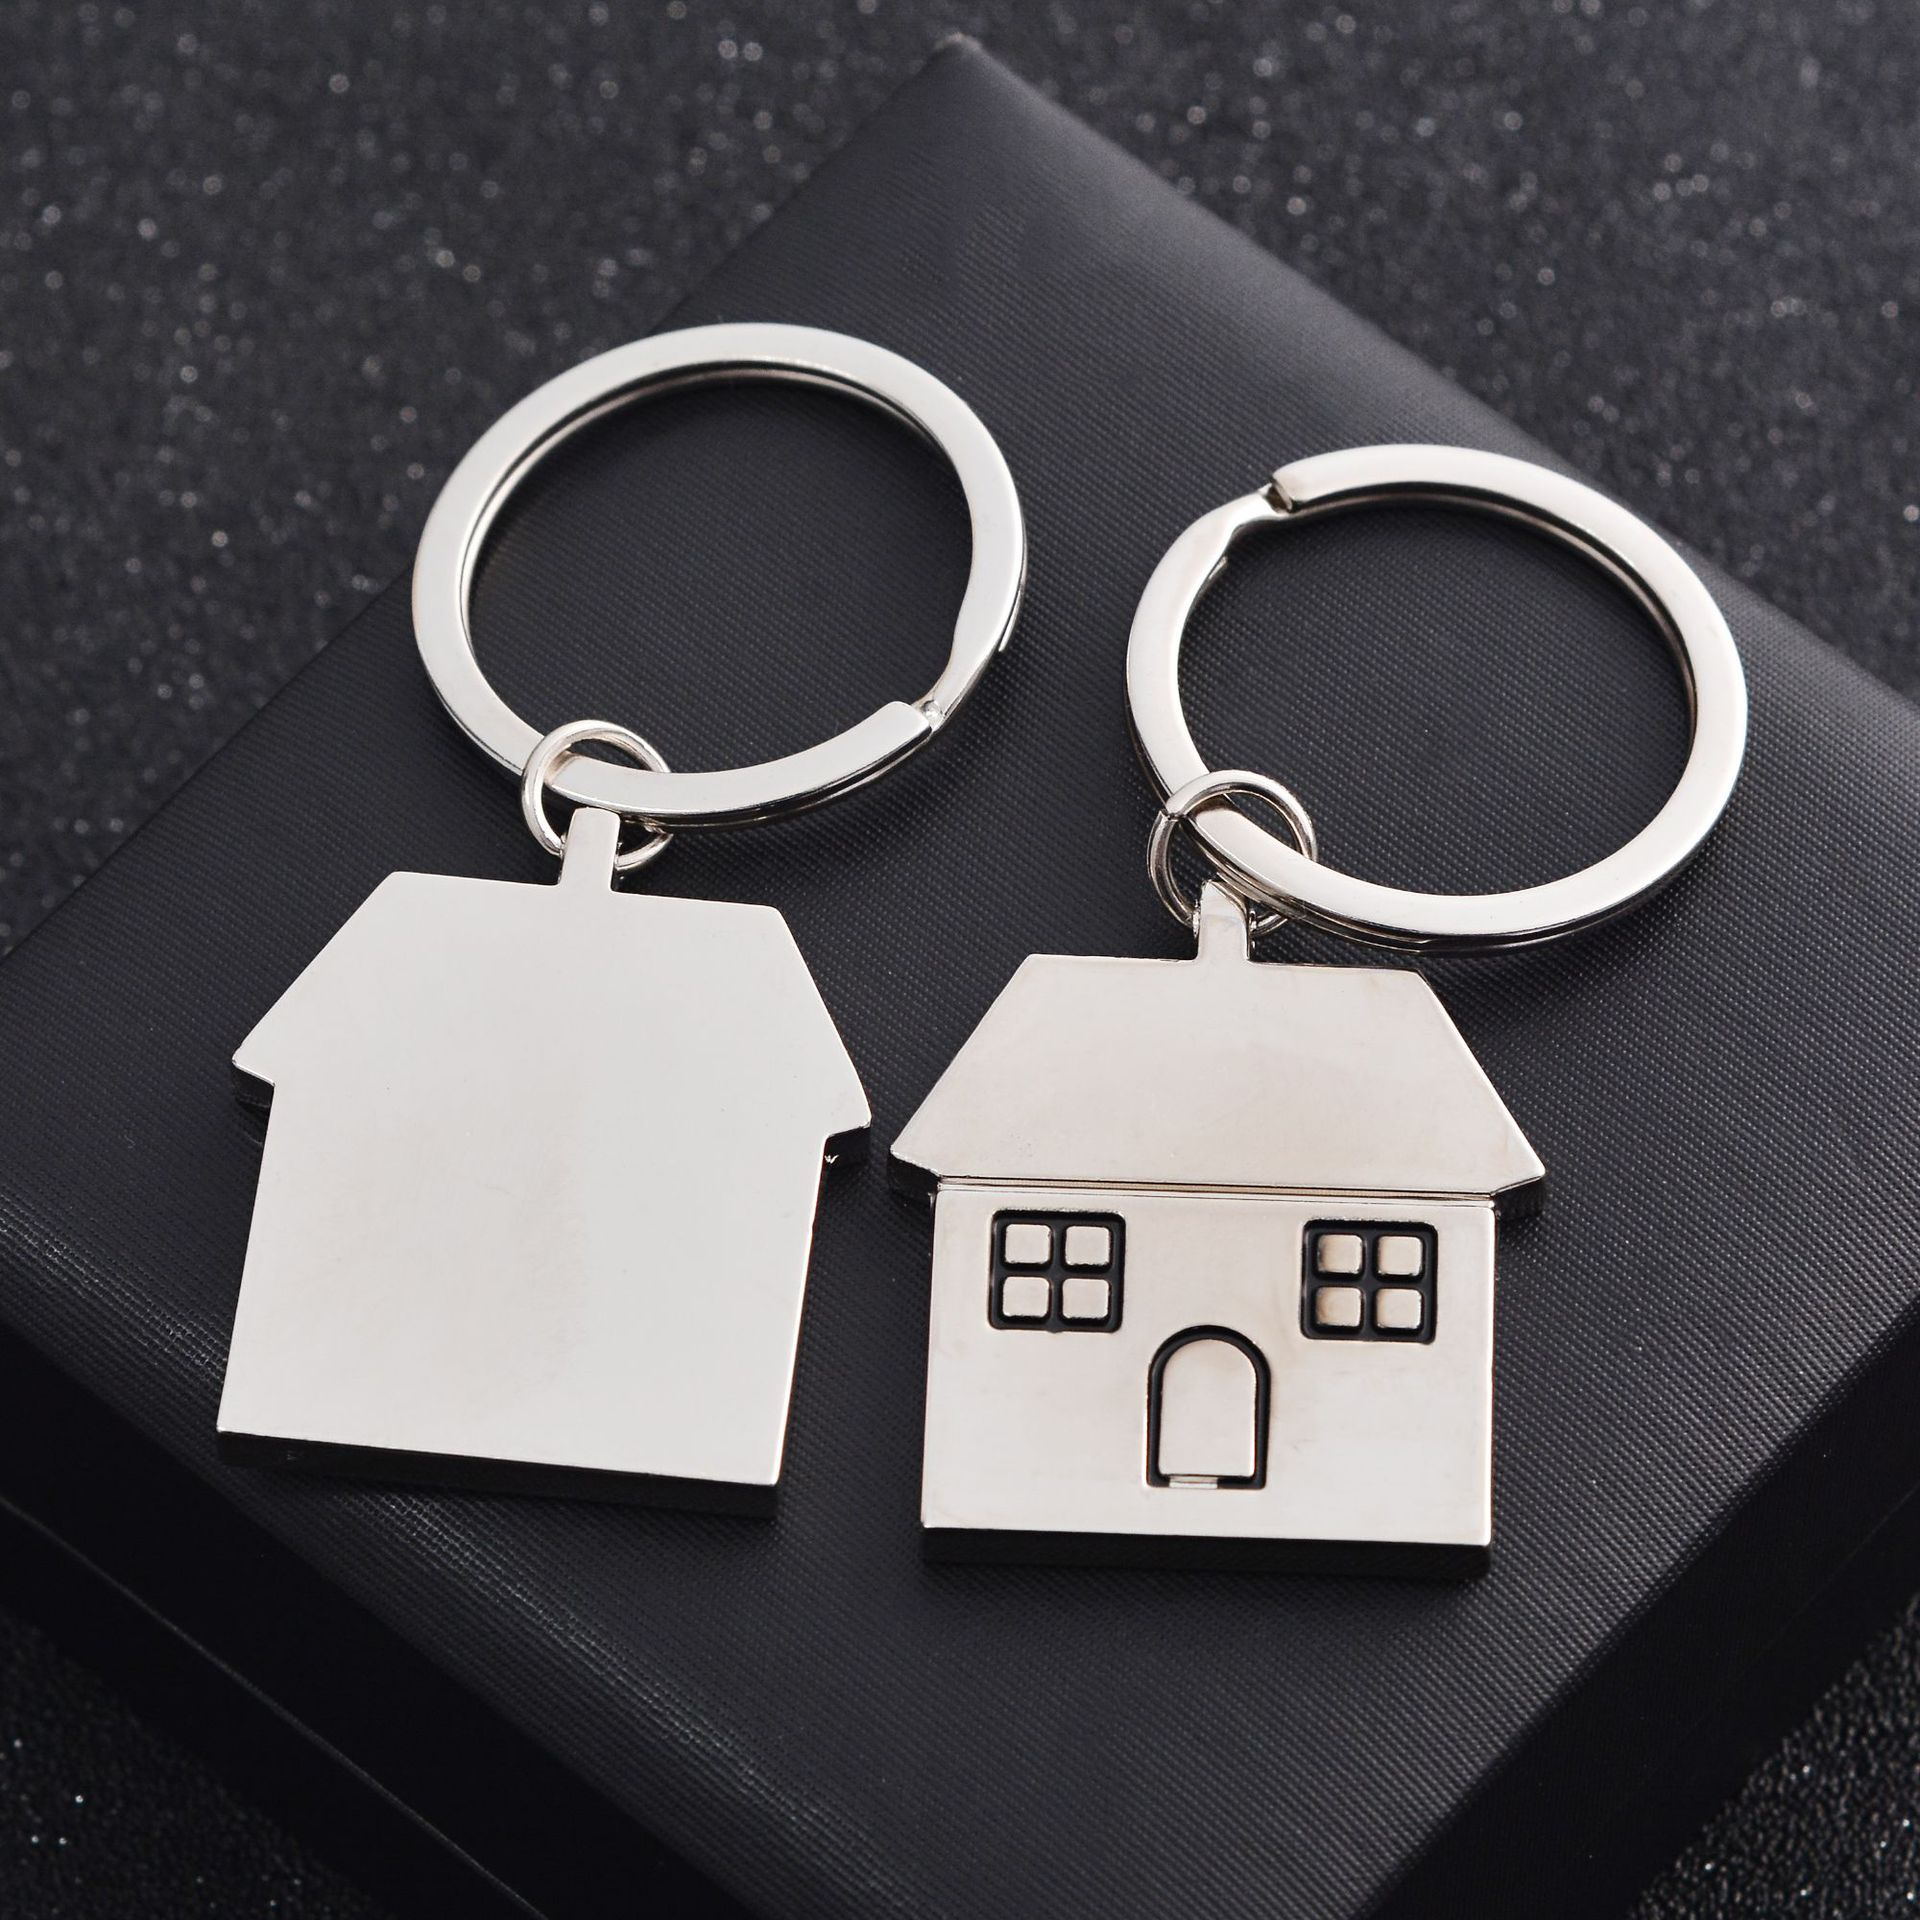 custom High Quality Supply Black Custom The laser Metal material The house shape Key chains